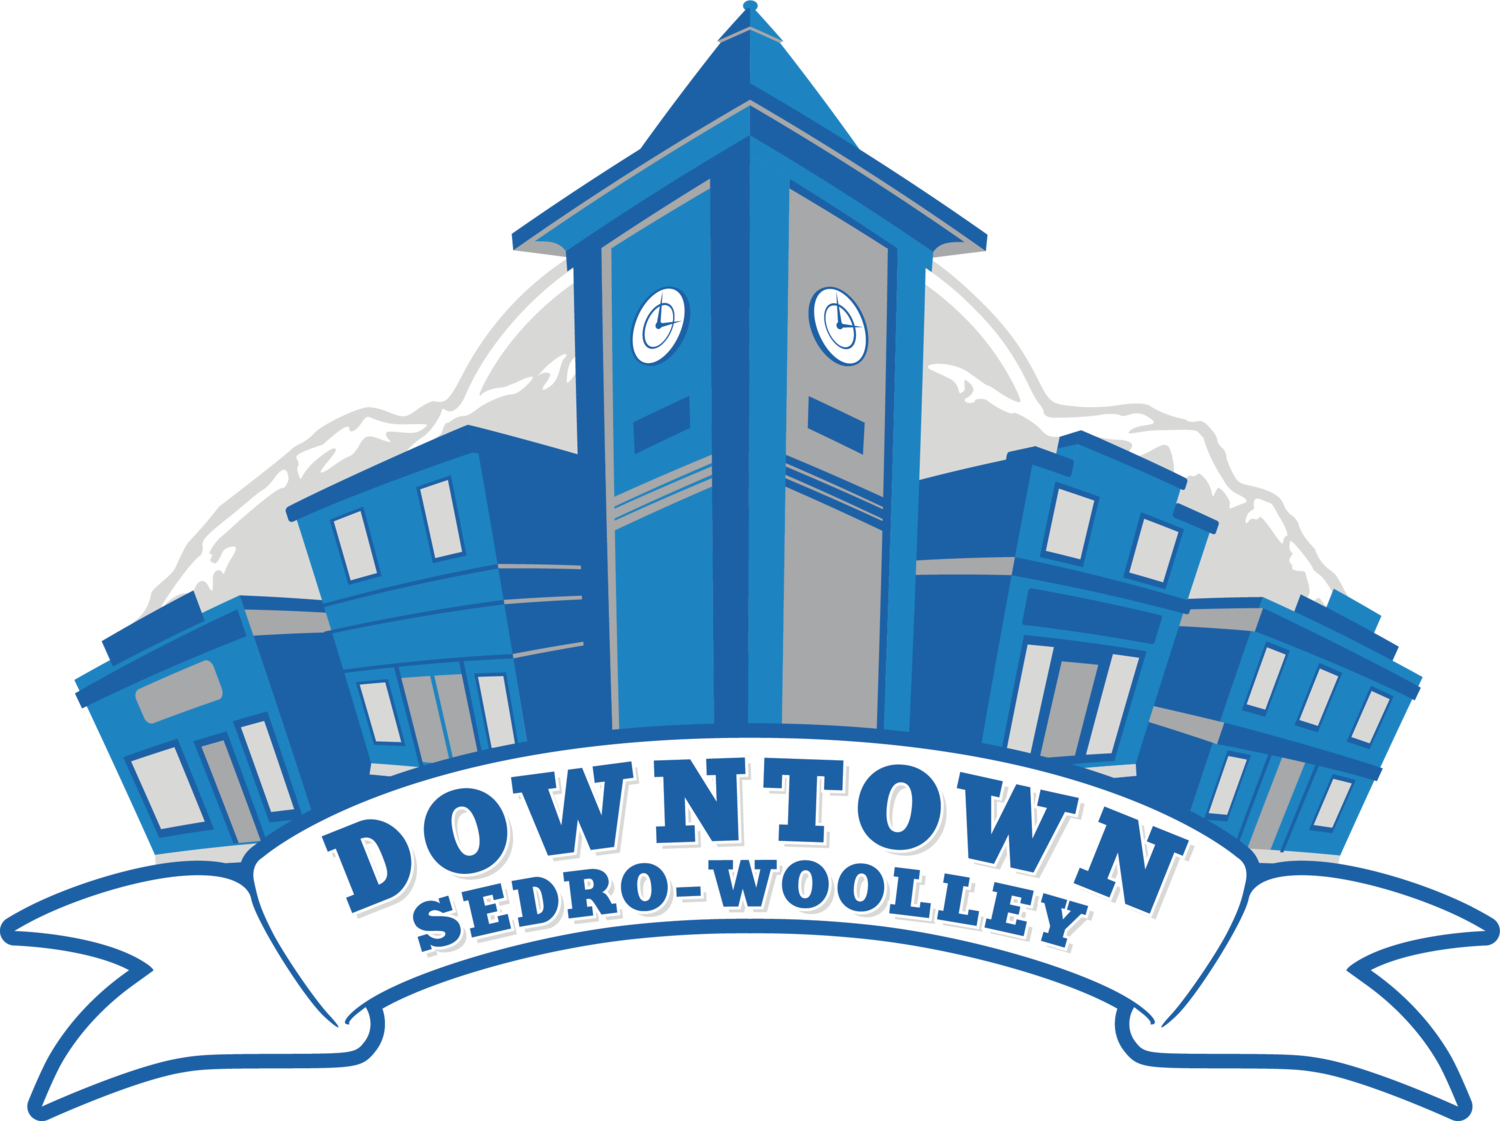 Neighbors clipart downtown. Revitalize woolley sedro association